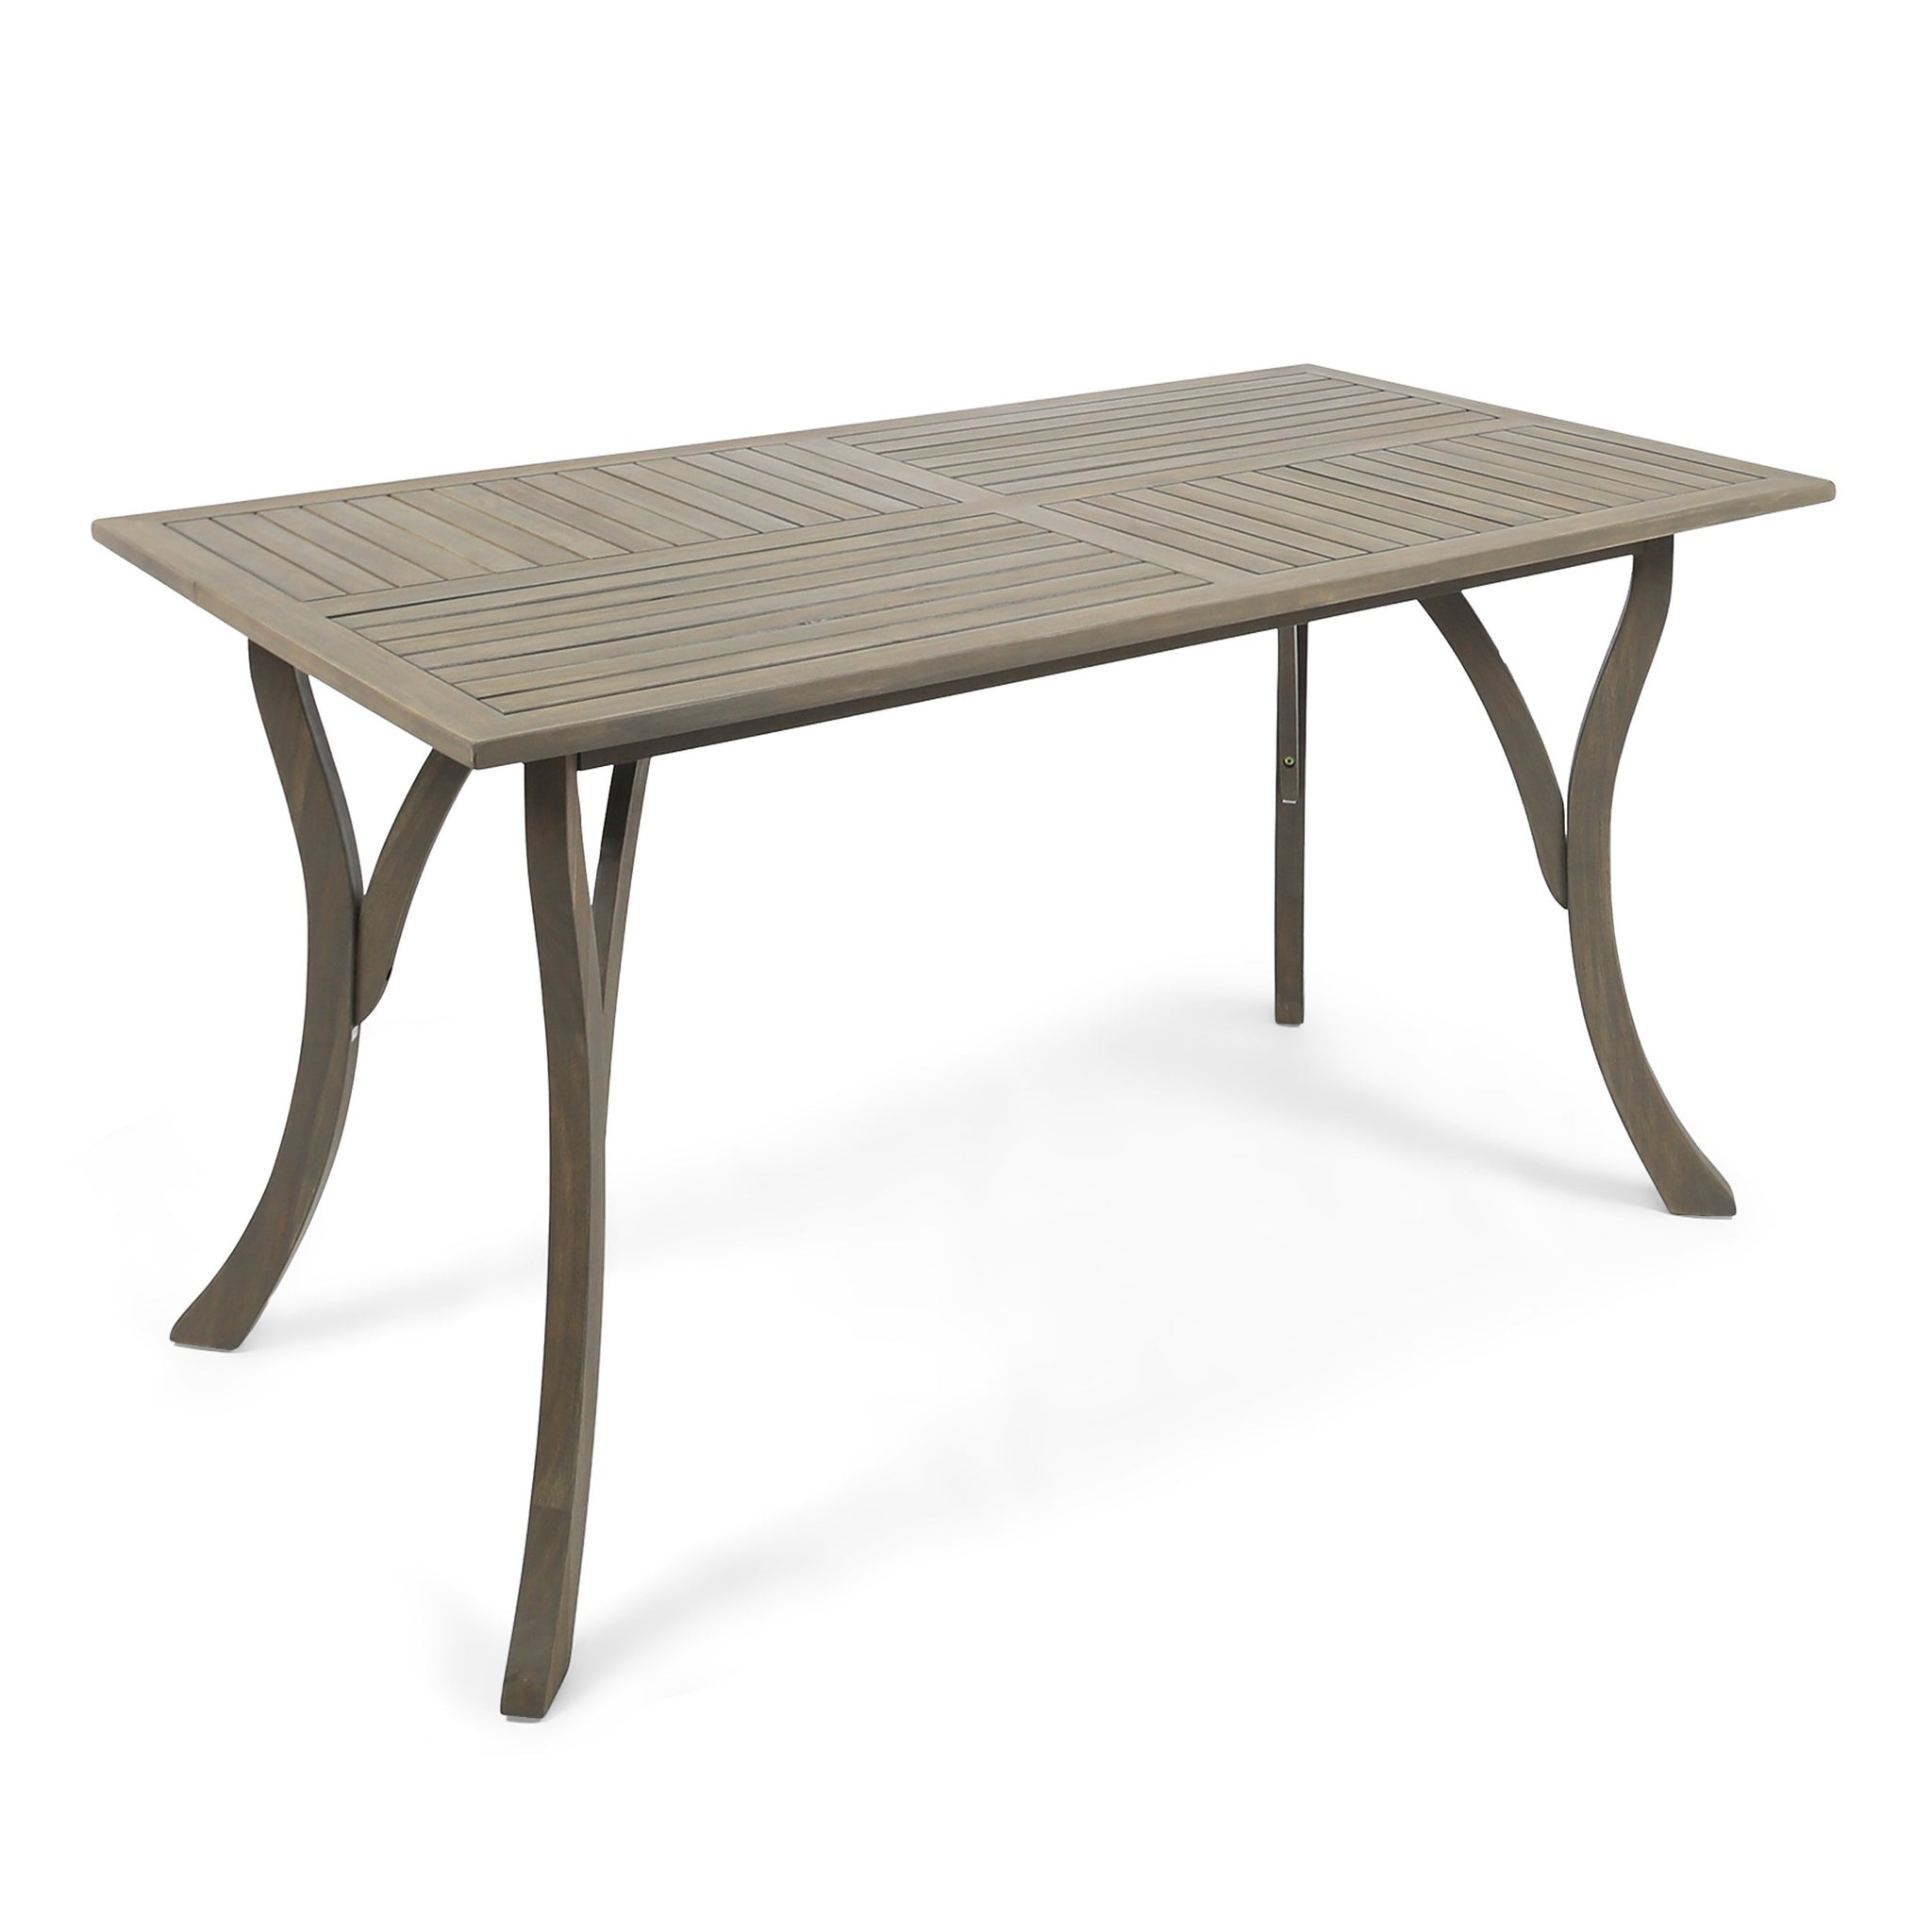 Hensley Outdoor Acacia Wood Rectangular Dining Table